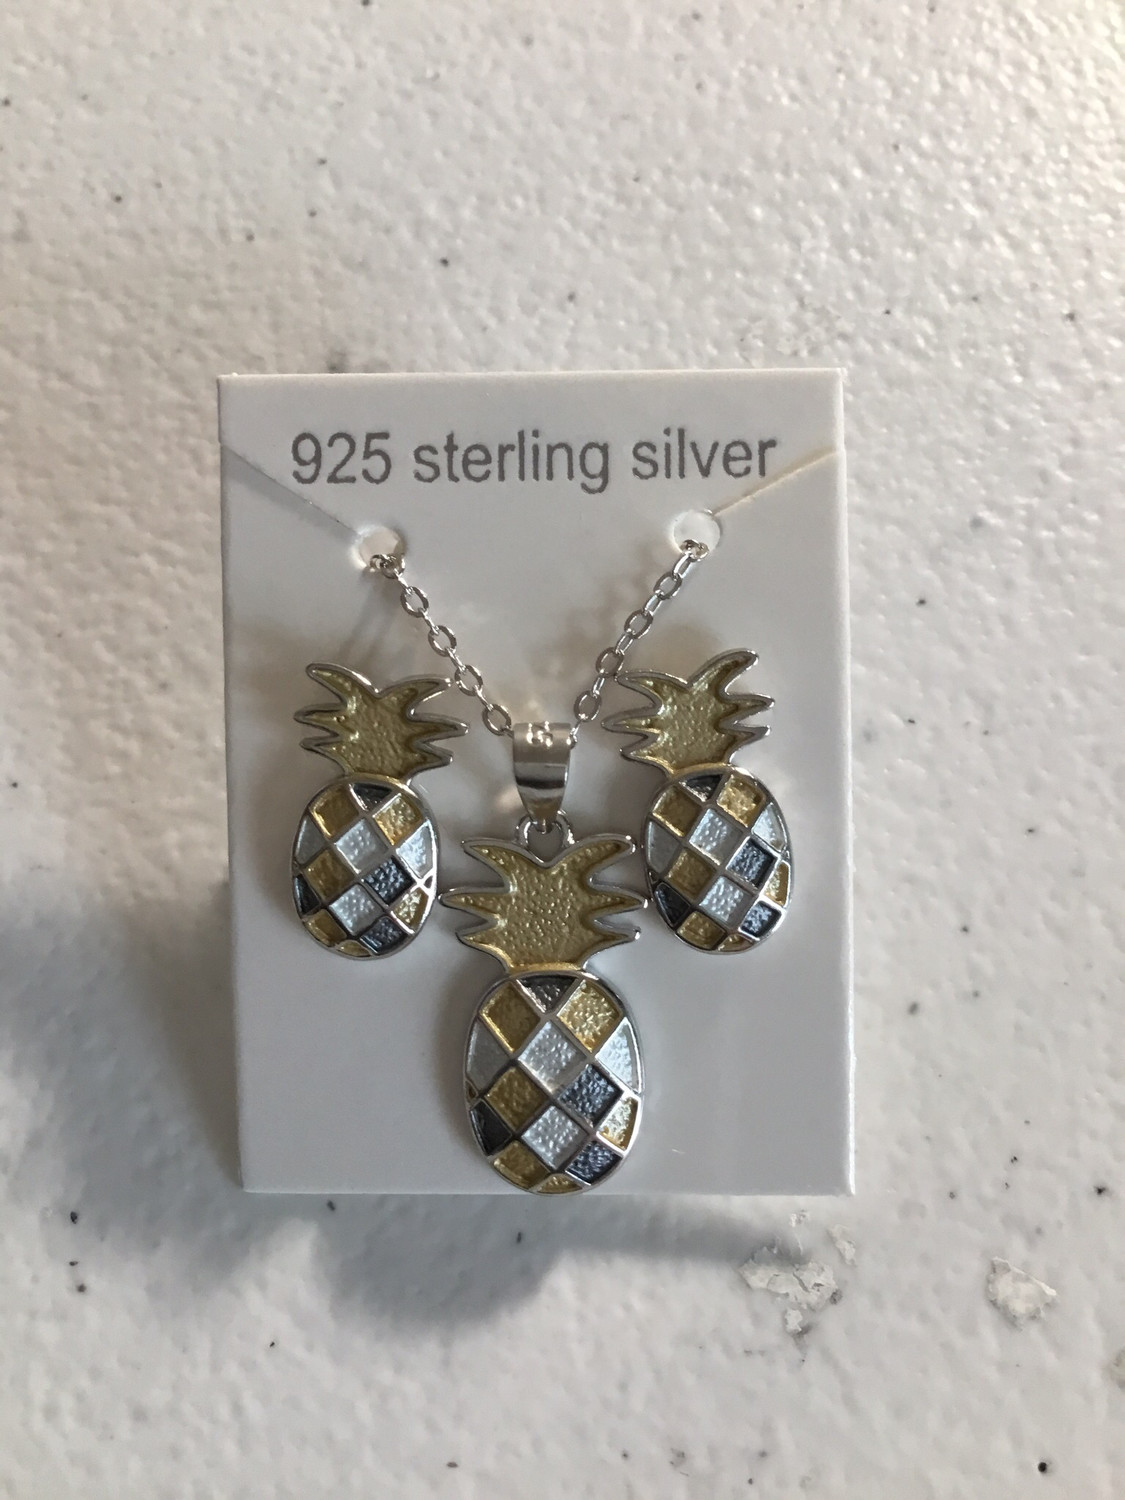 Tri-Color Sterling Silver Pineapple Earrings And Necklace Set